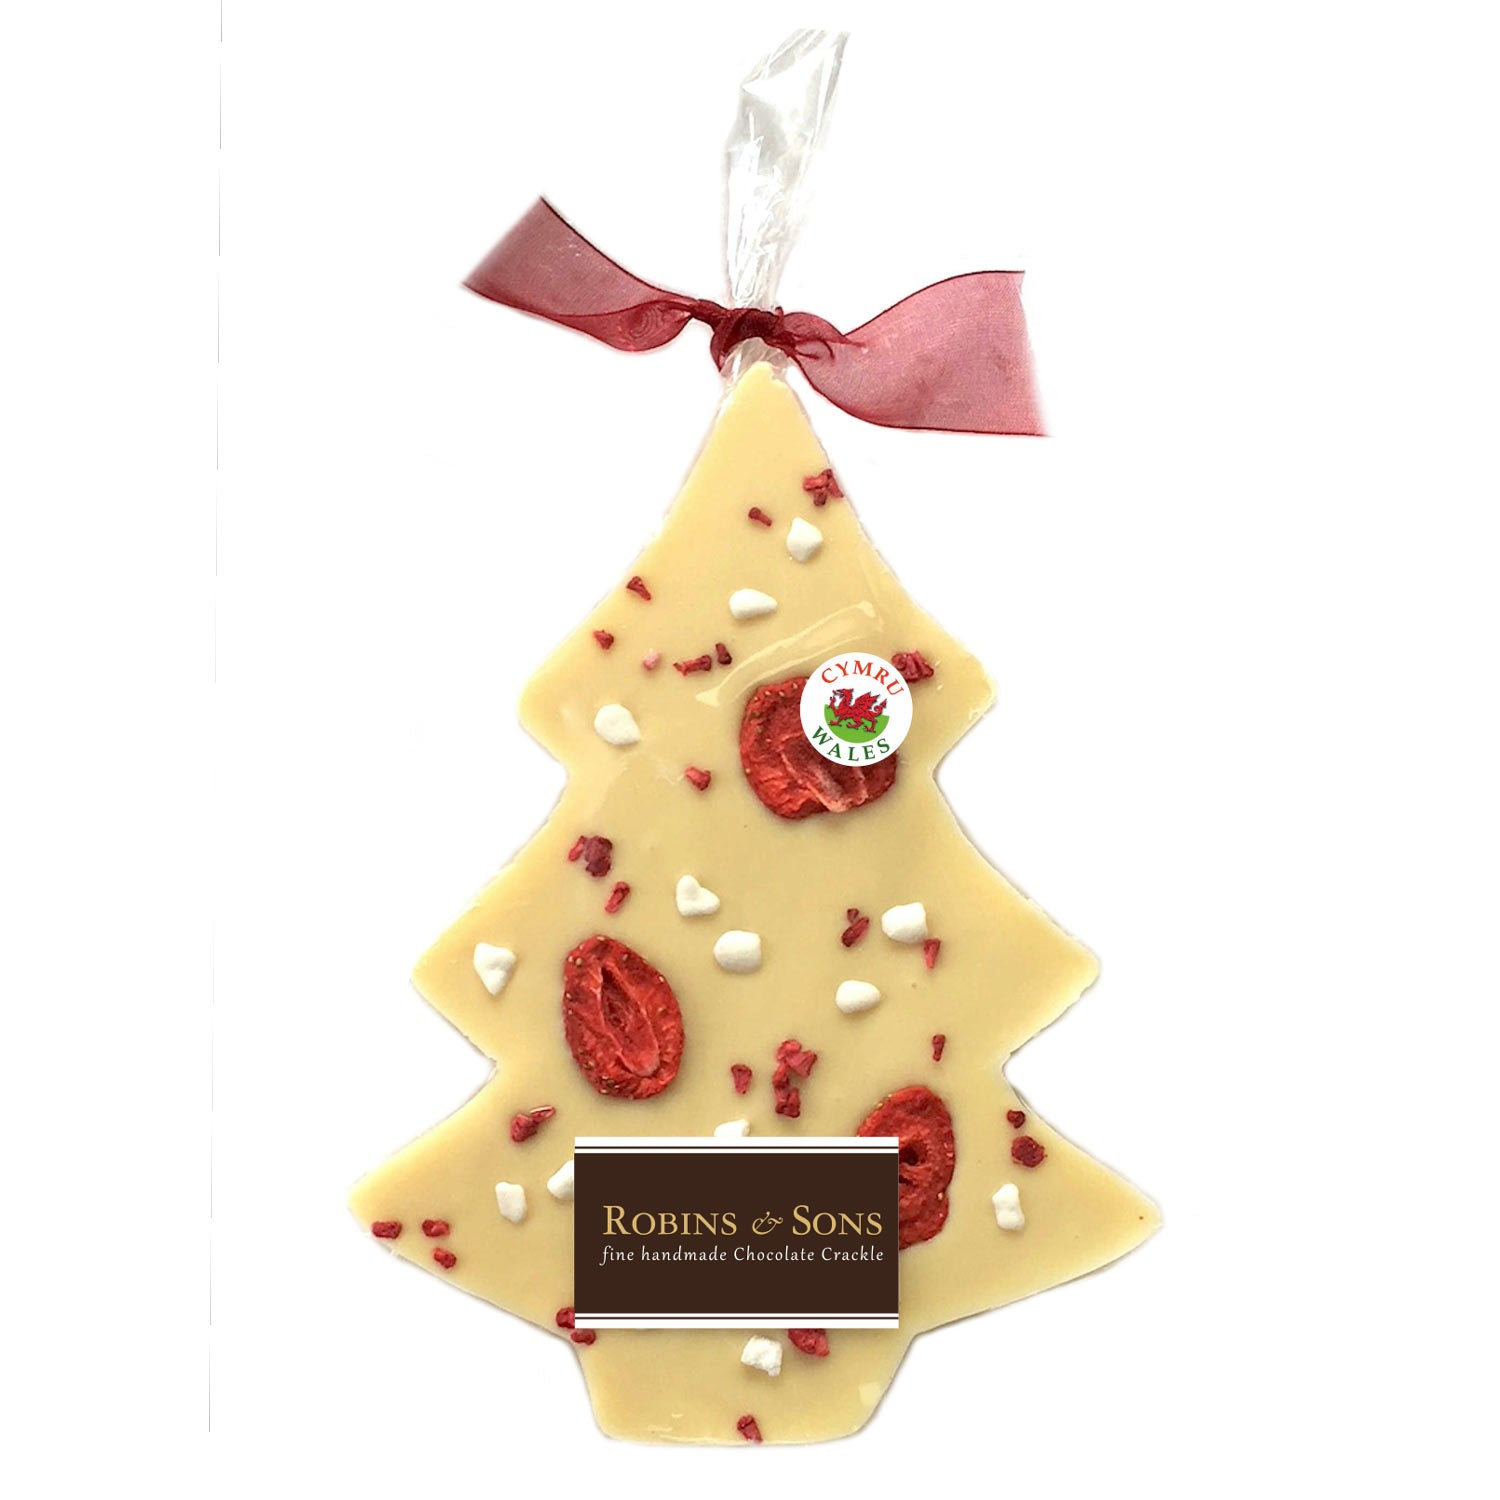 Chocolate Christmas Tree - Handmade in Wales - Very Berry White